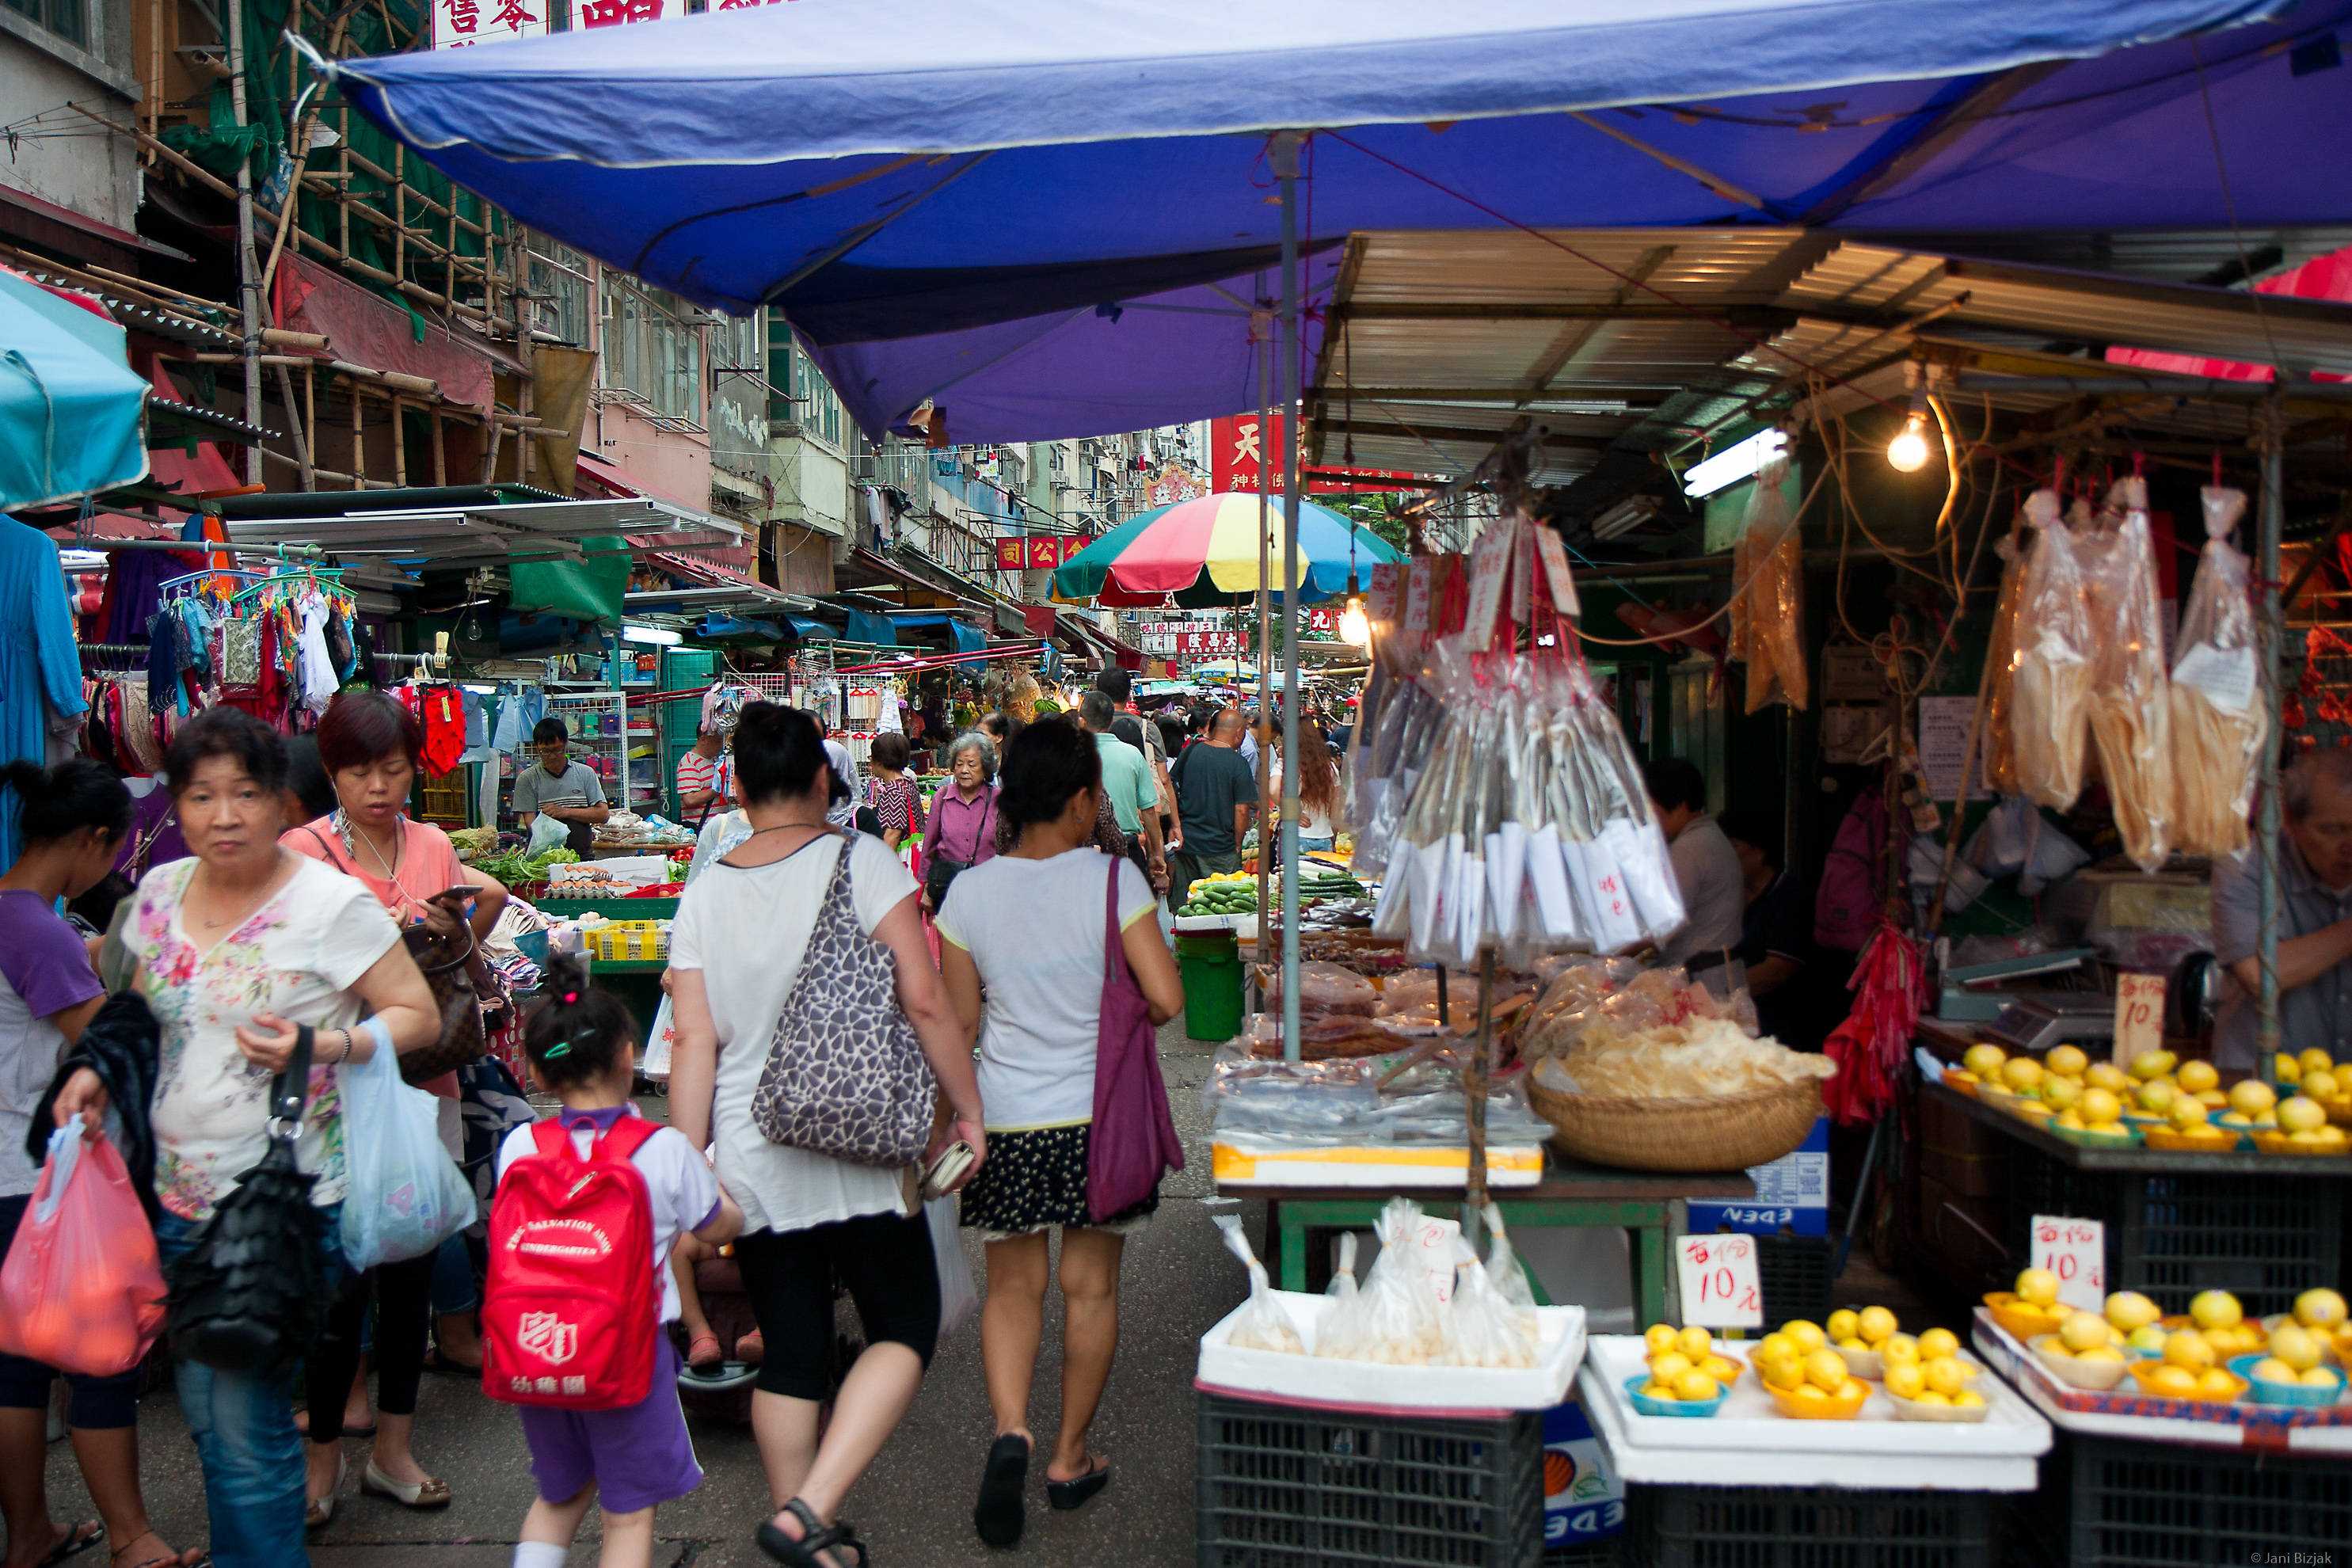 Hong Kong open markets